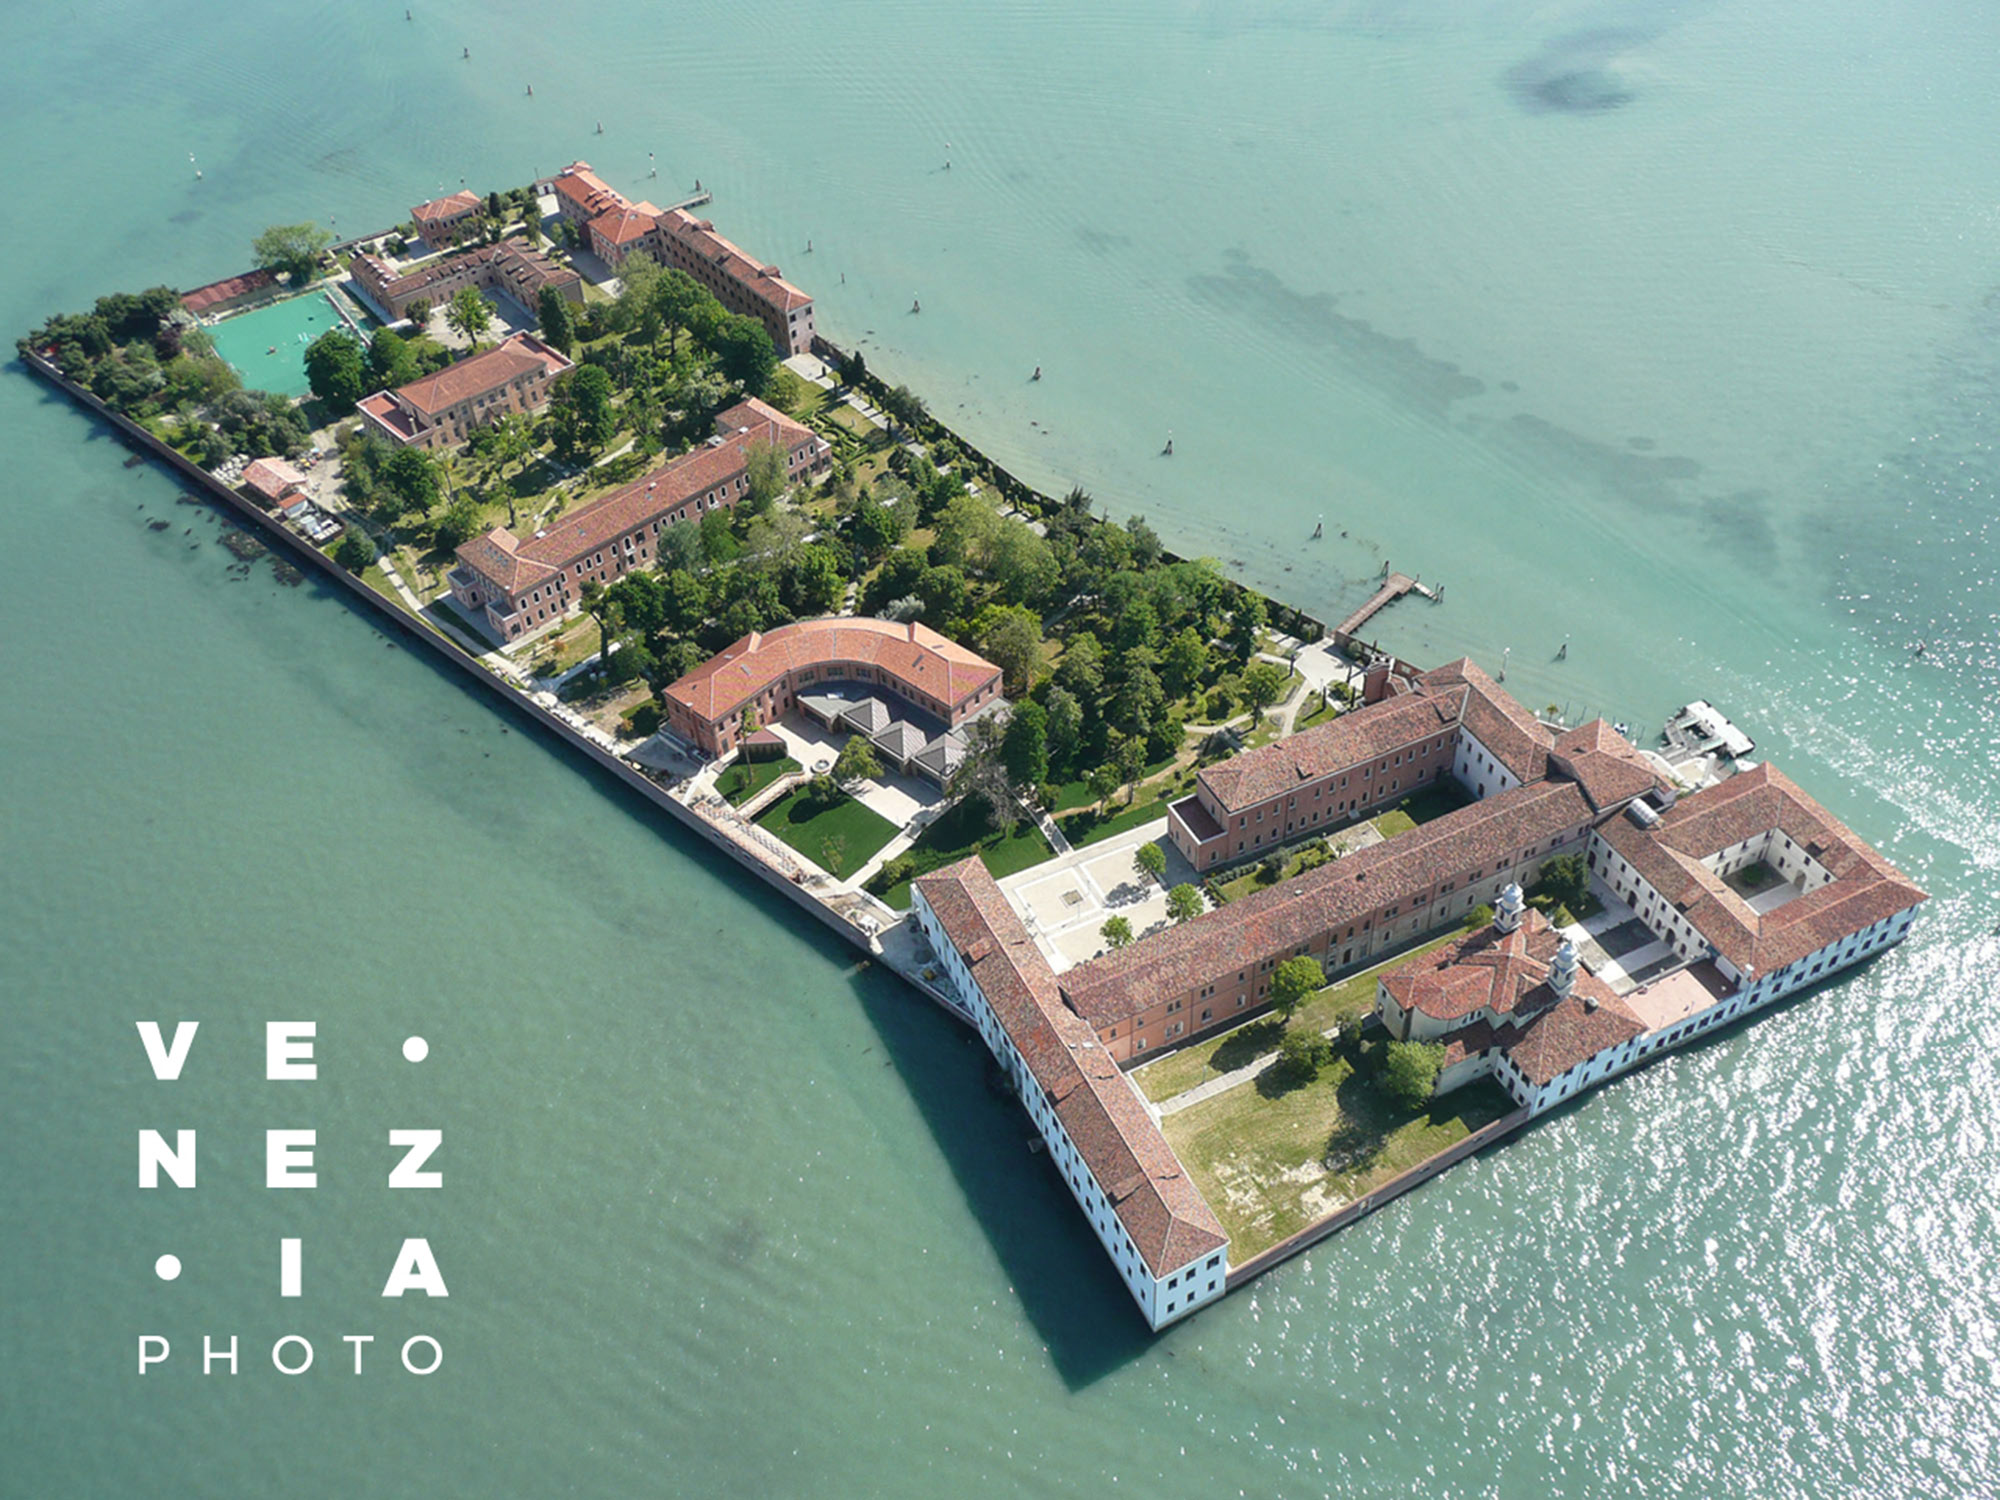 Venezia Photo, last available places